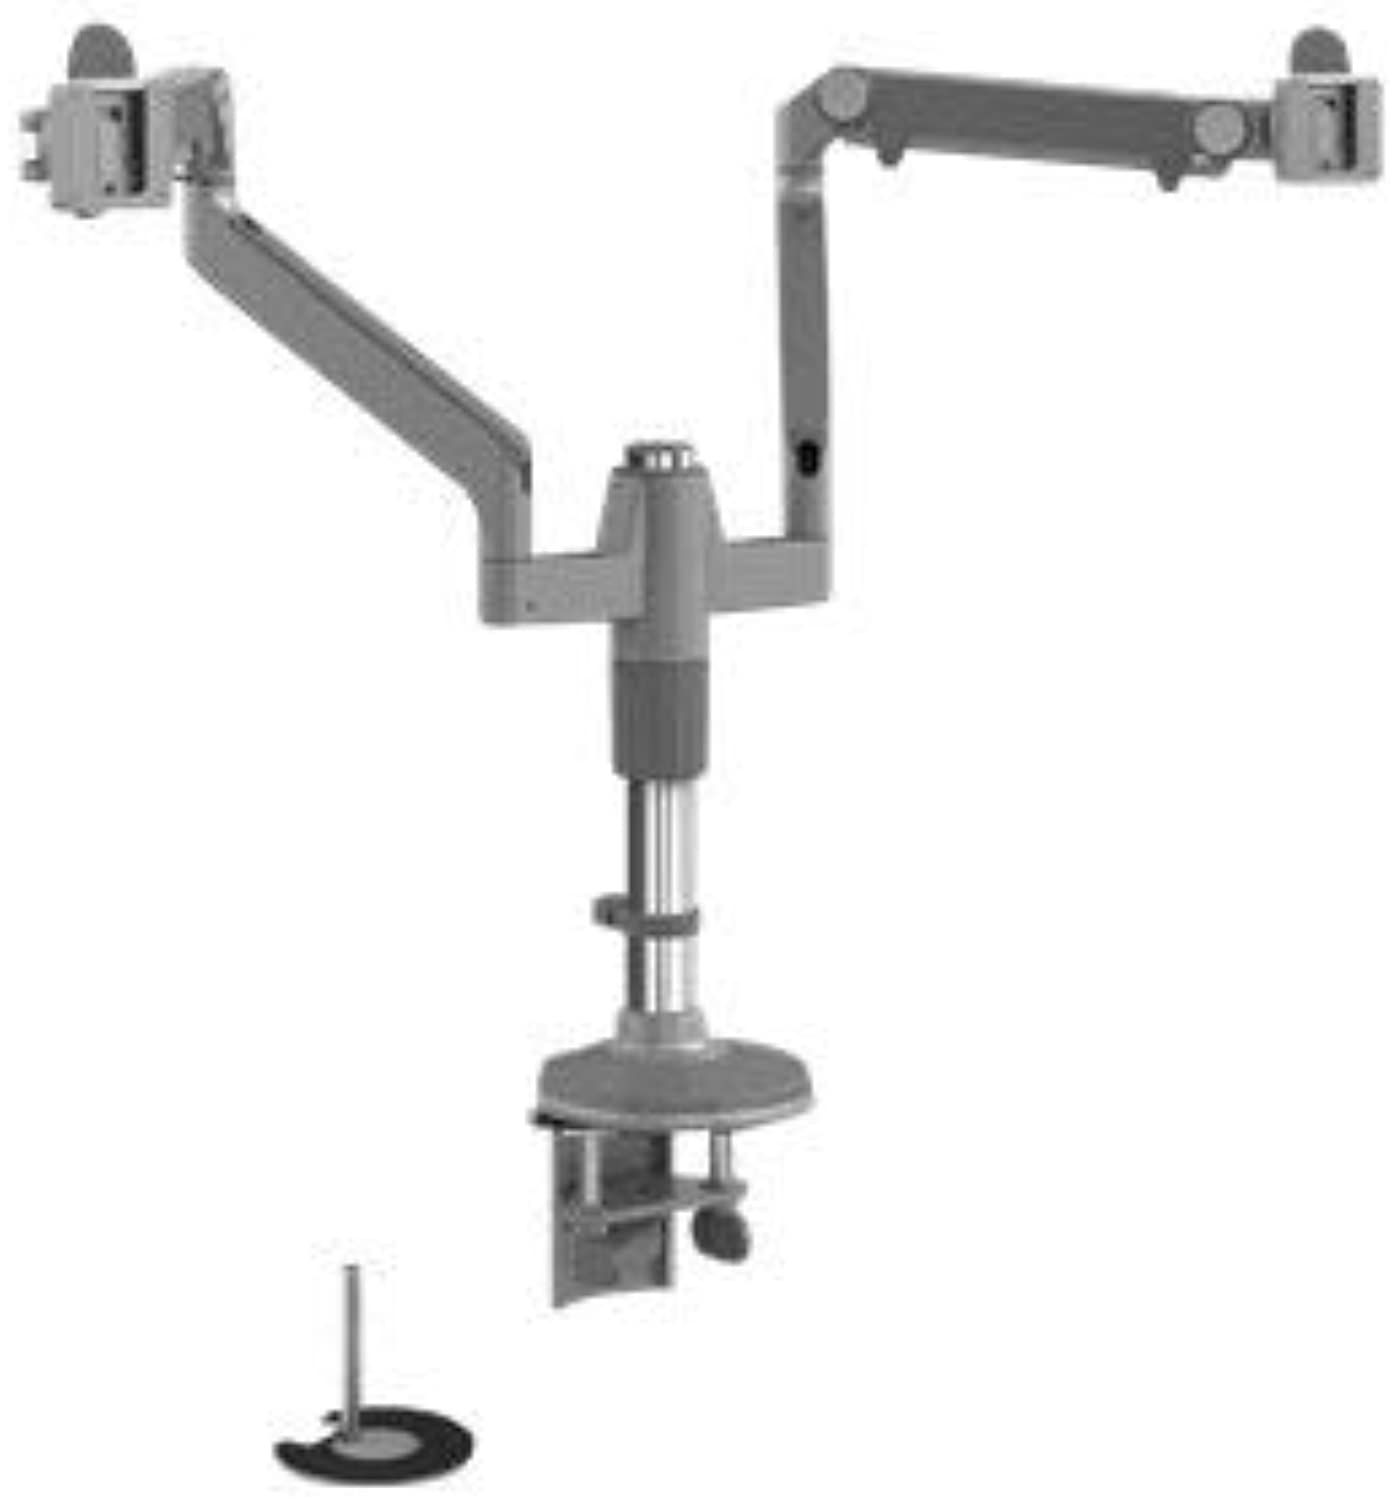 Humanscale M Flex Dual-Monitor Mounting Arm with Dual Bolt Clamp Mount (Model MF22S11D12)